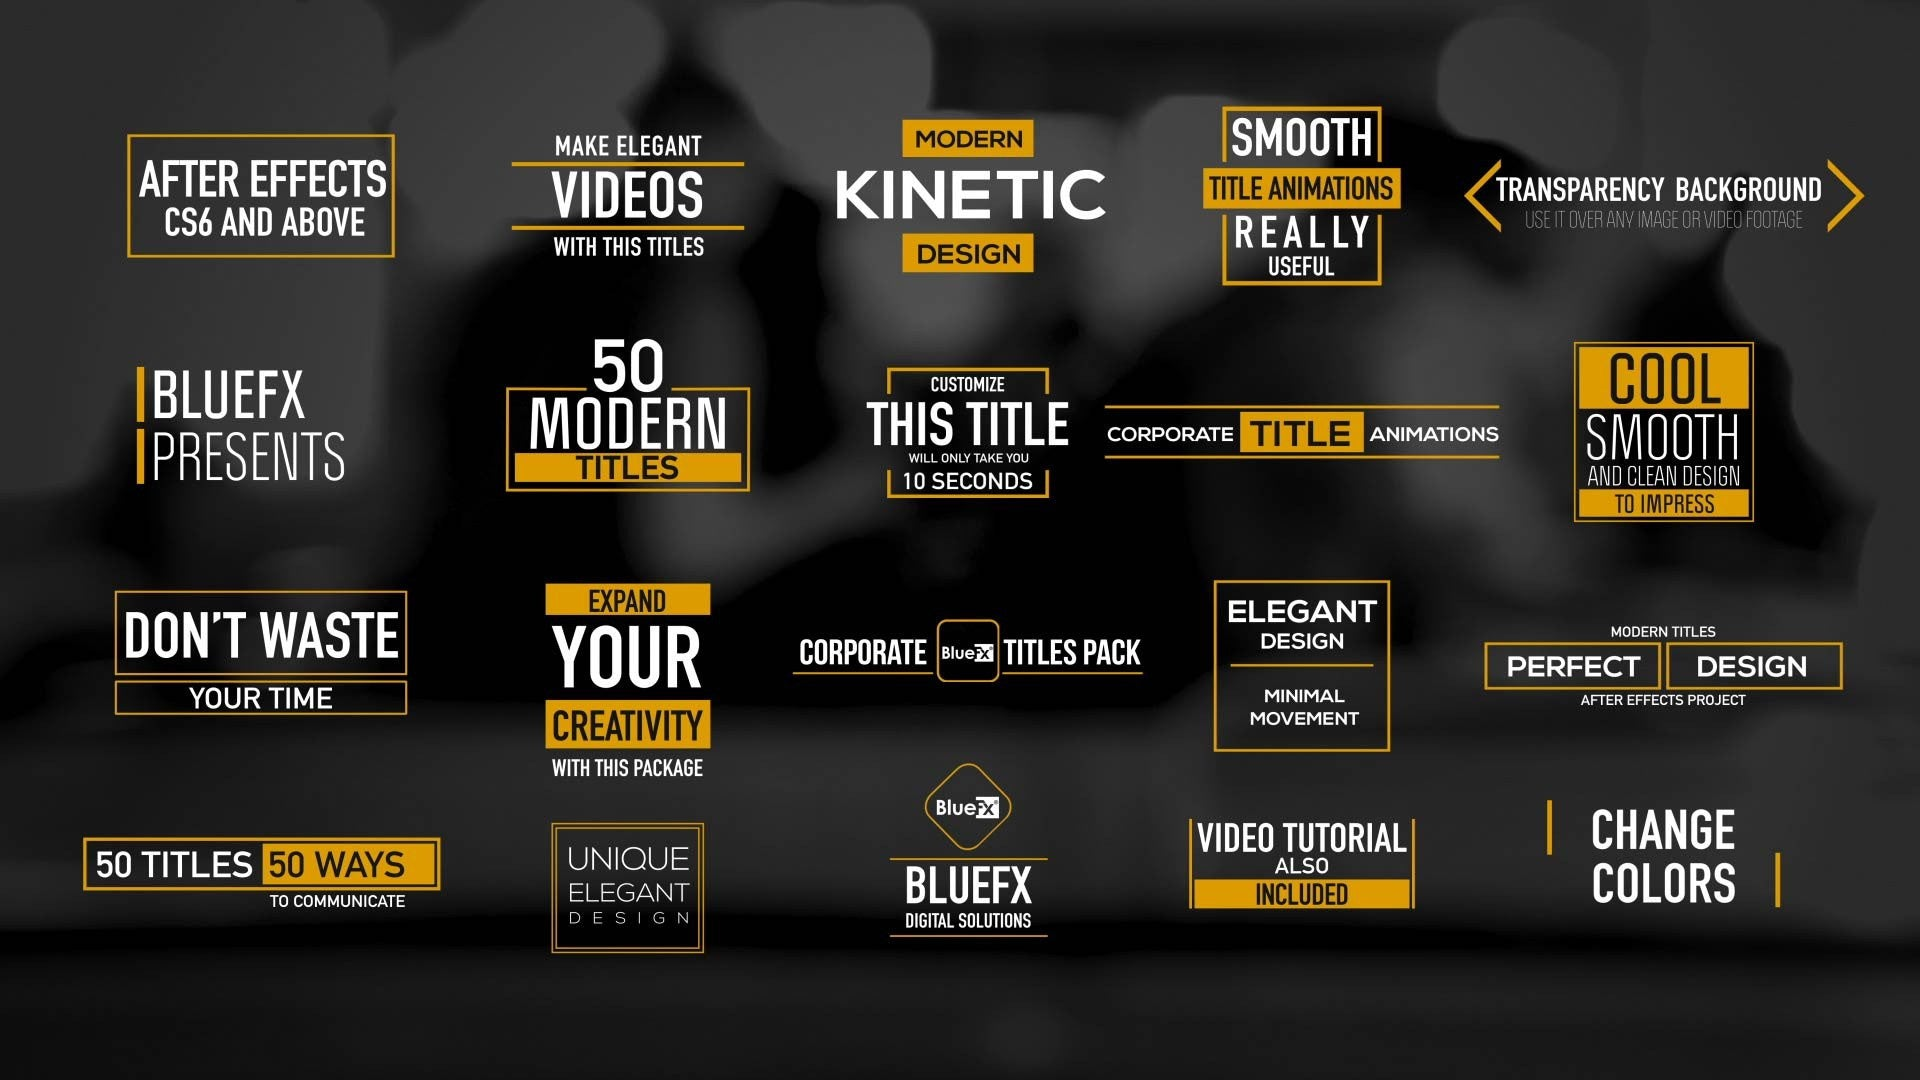 adobe after effects title templates free - 50 modern titles and lower thirds by bluefx virtual set lab